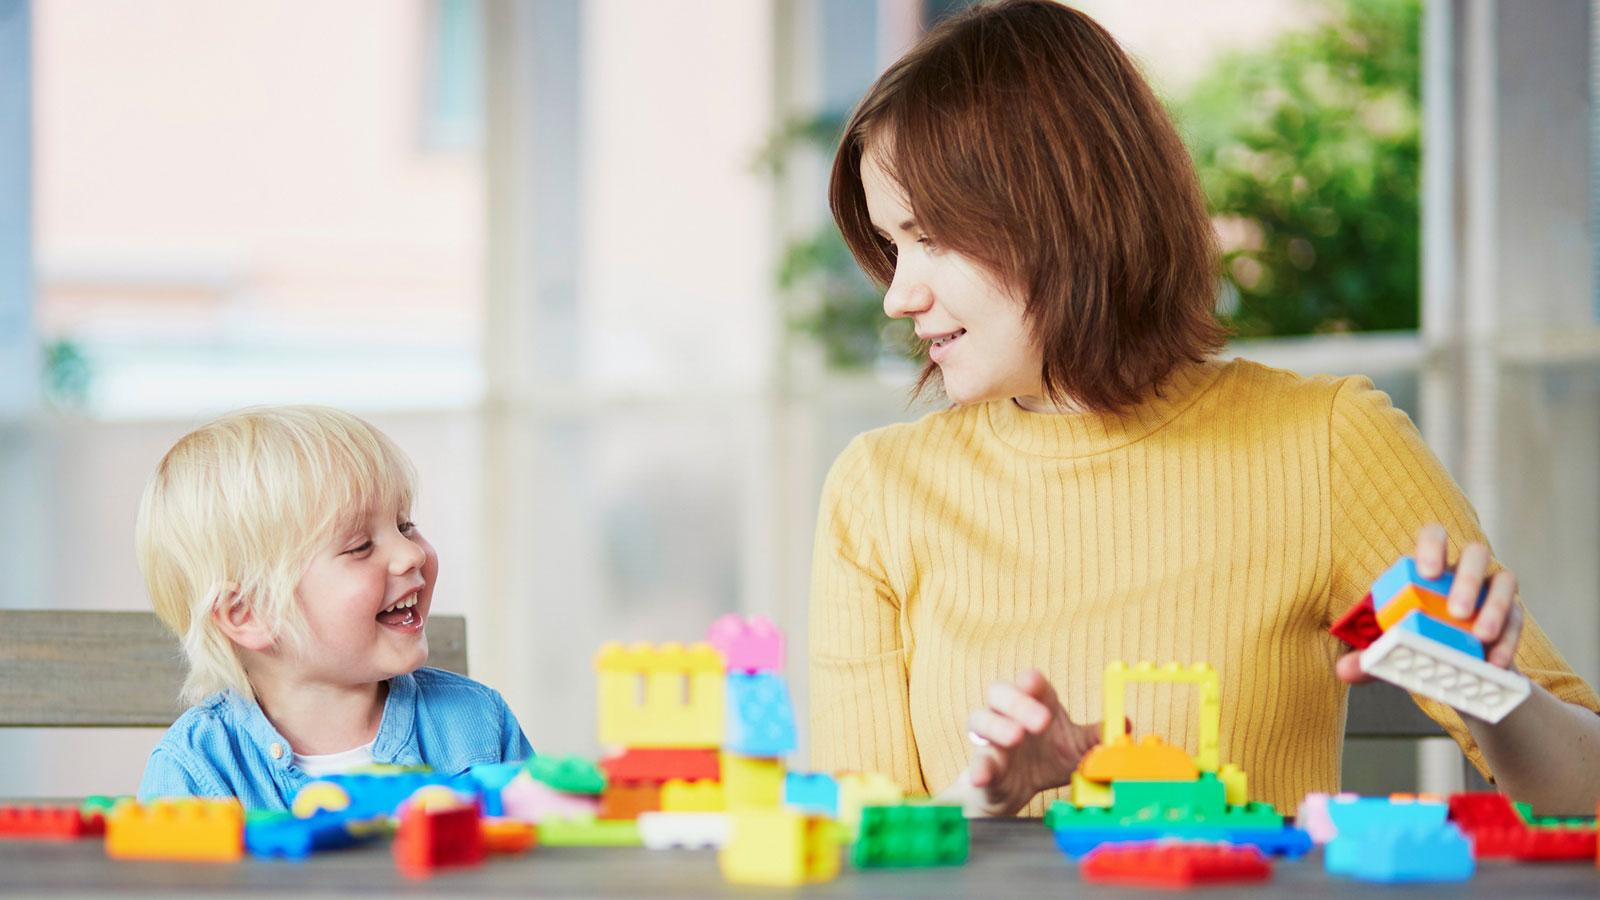 preschool teacher and young child playing with blocks